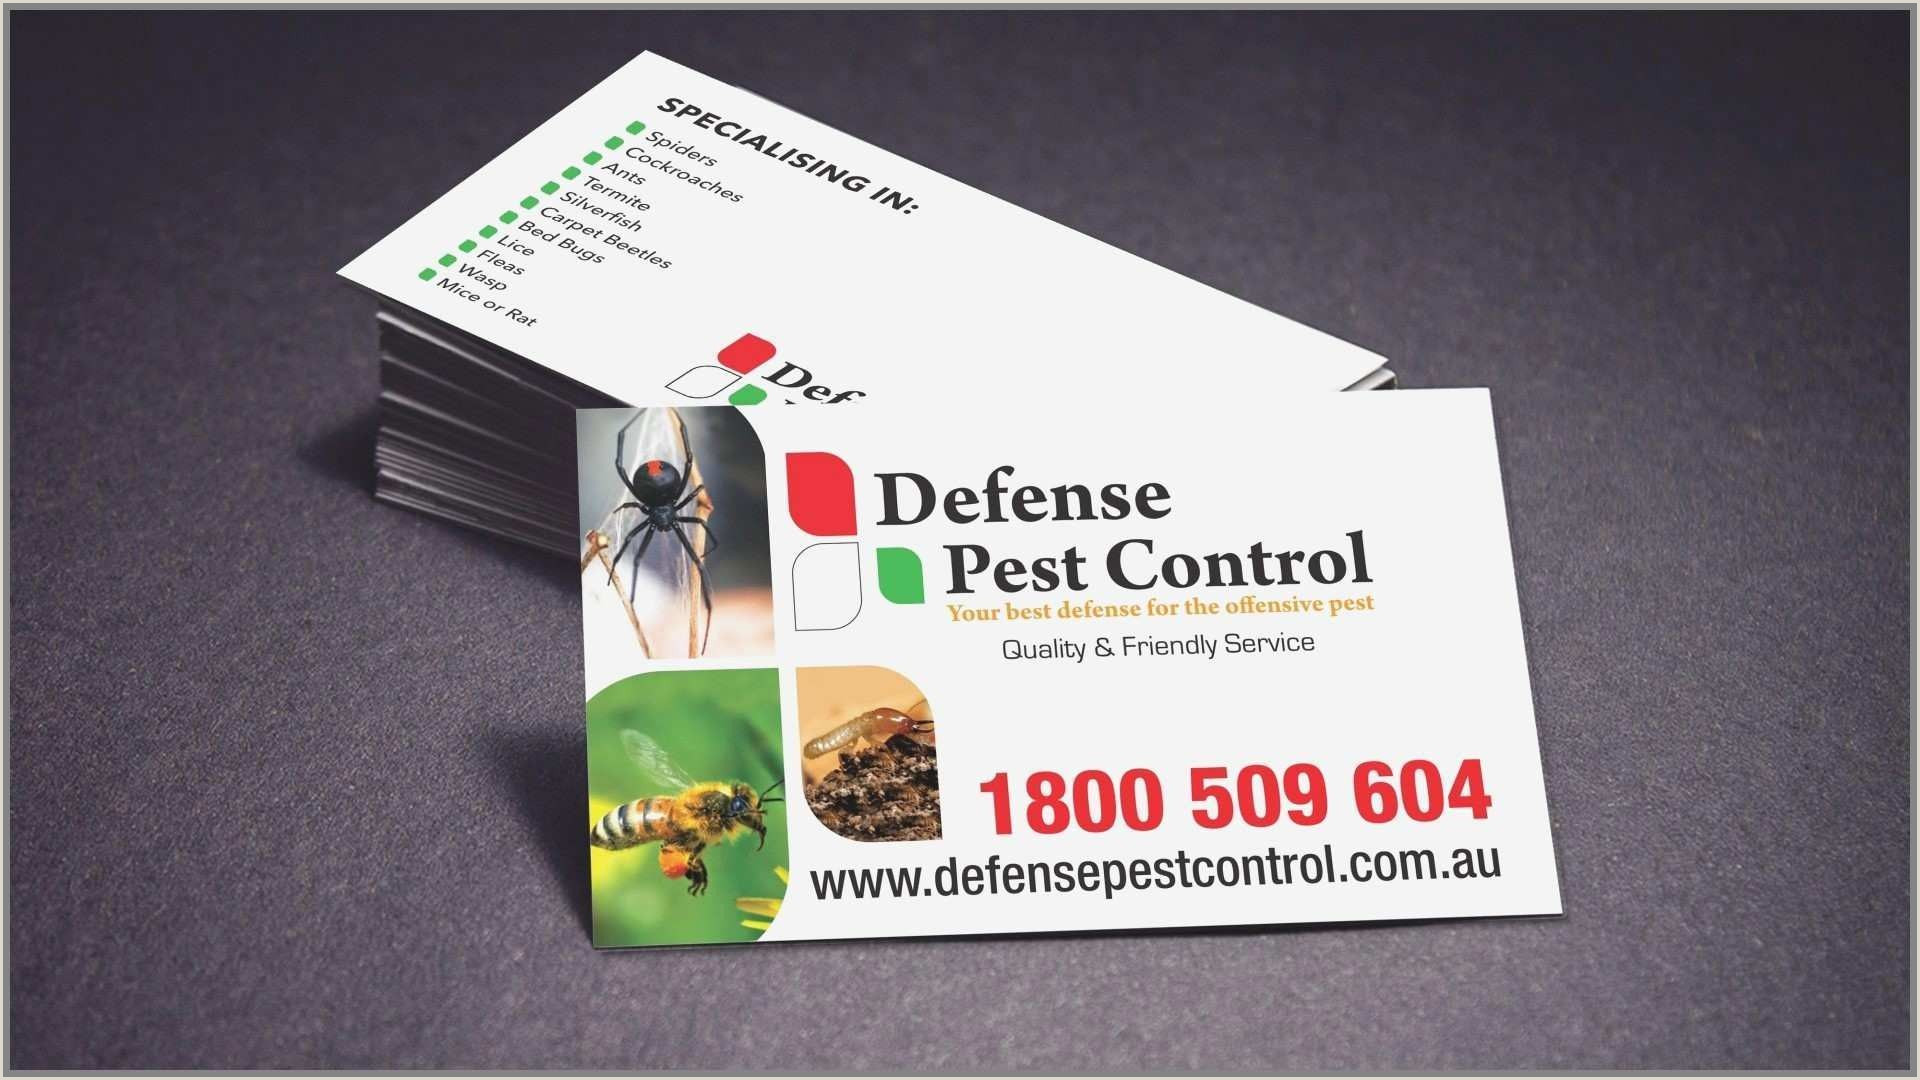 Cleaning Quotes For Business Cards Download New House Cleaning Business Cards Templates Free